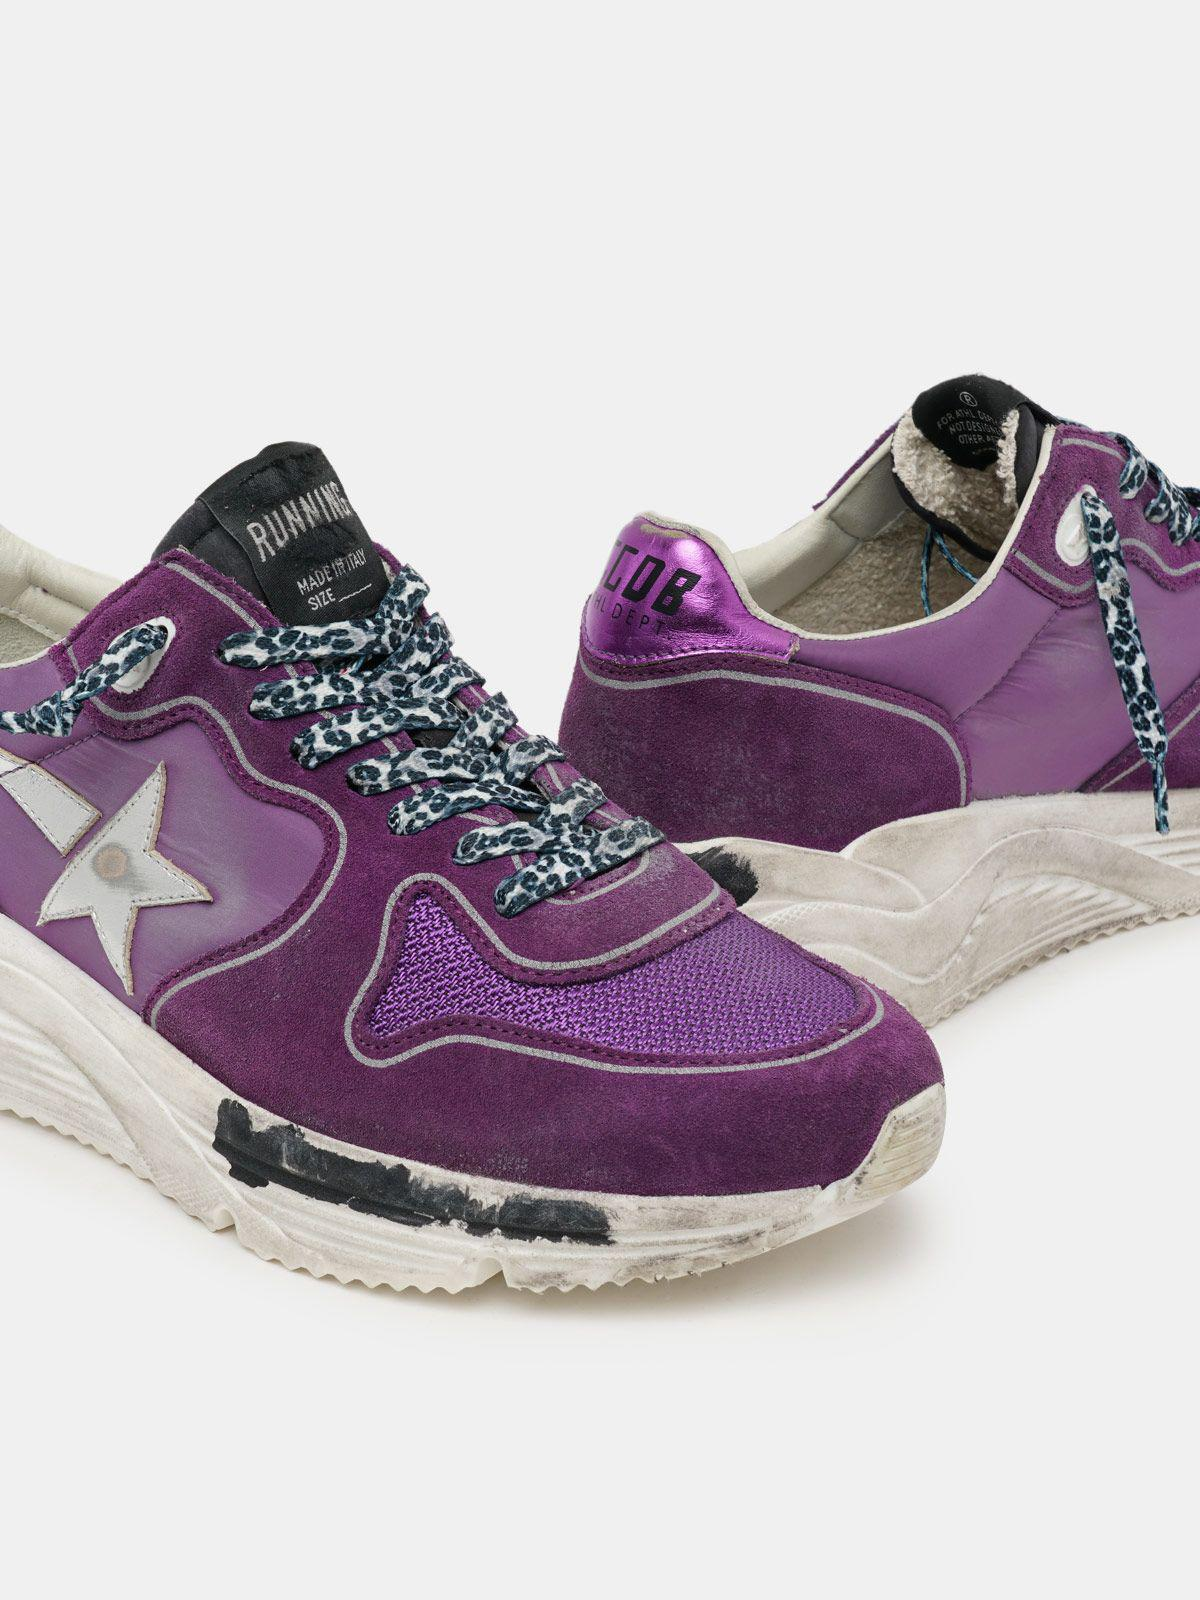 Suede, leather and mesh Running Sole sneakers with metallic purple heel tab 3